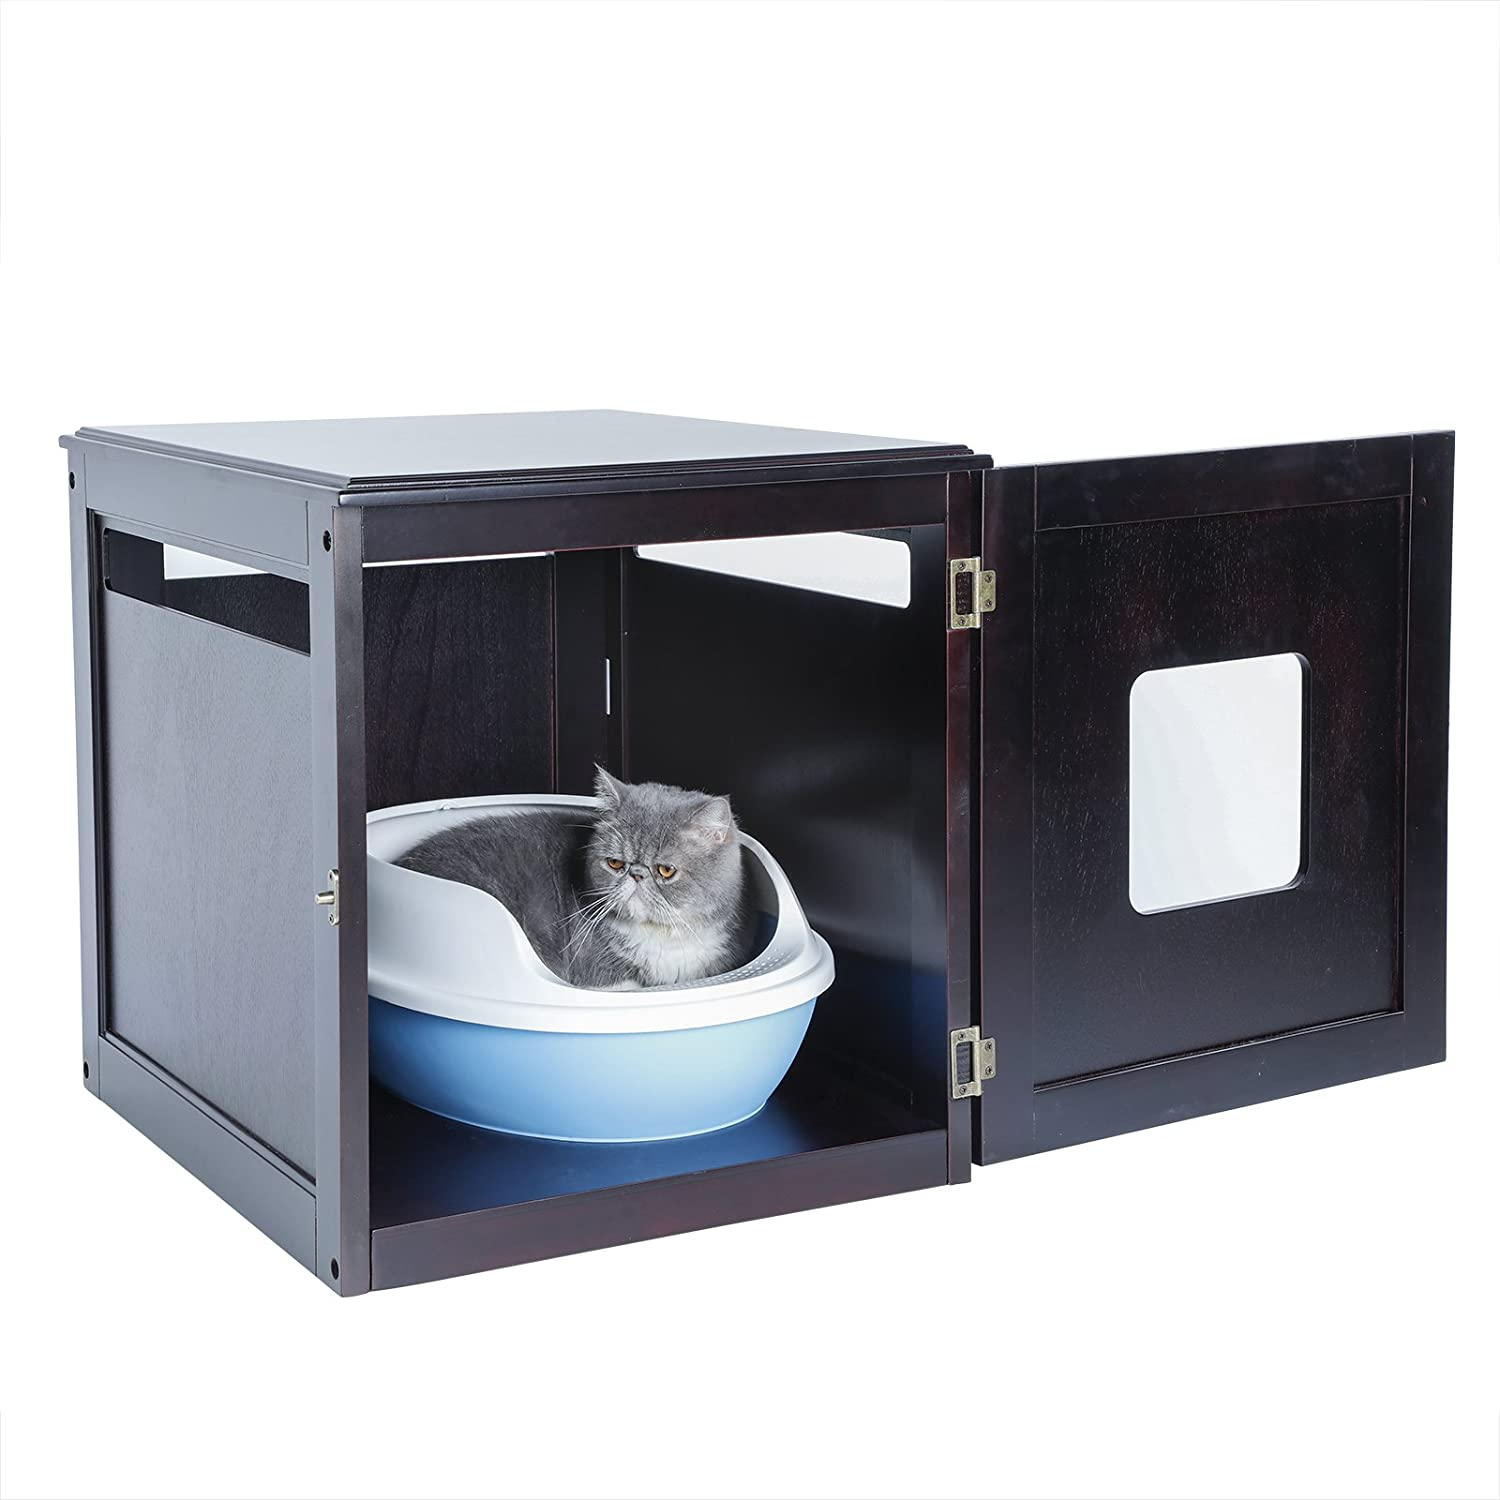 Petsfit Assemble Odorless Night Stand Pet House Litter Box Furniture with Latch Holding 20 x 24 x 21